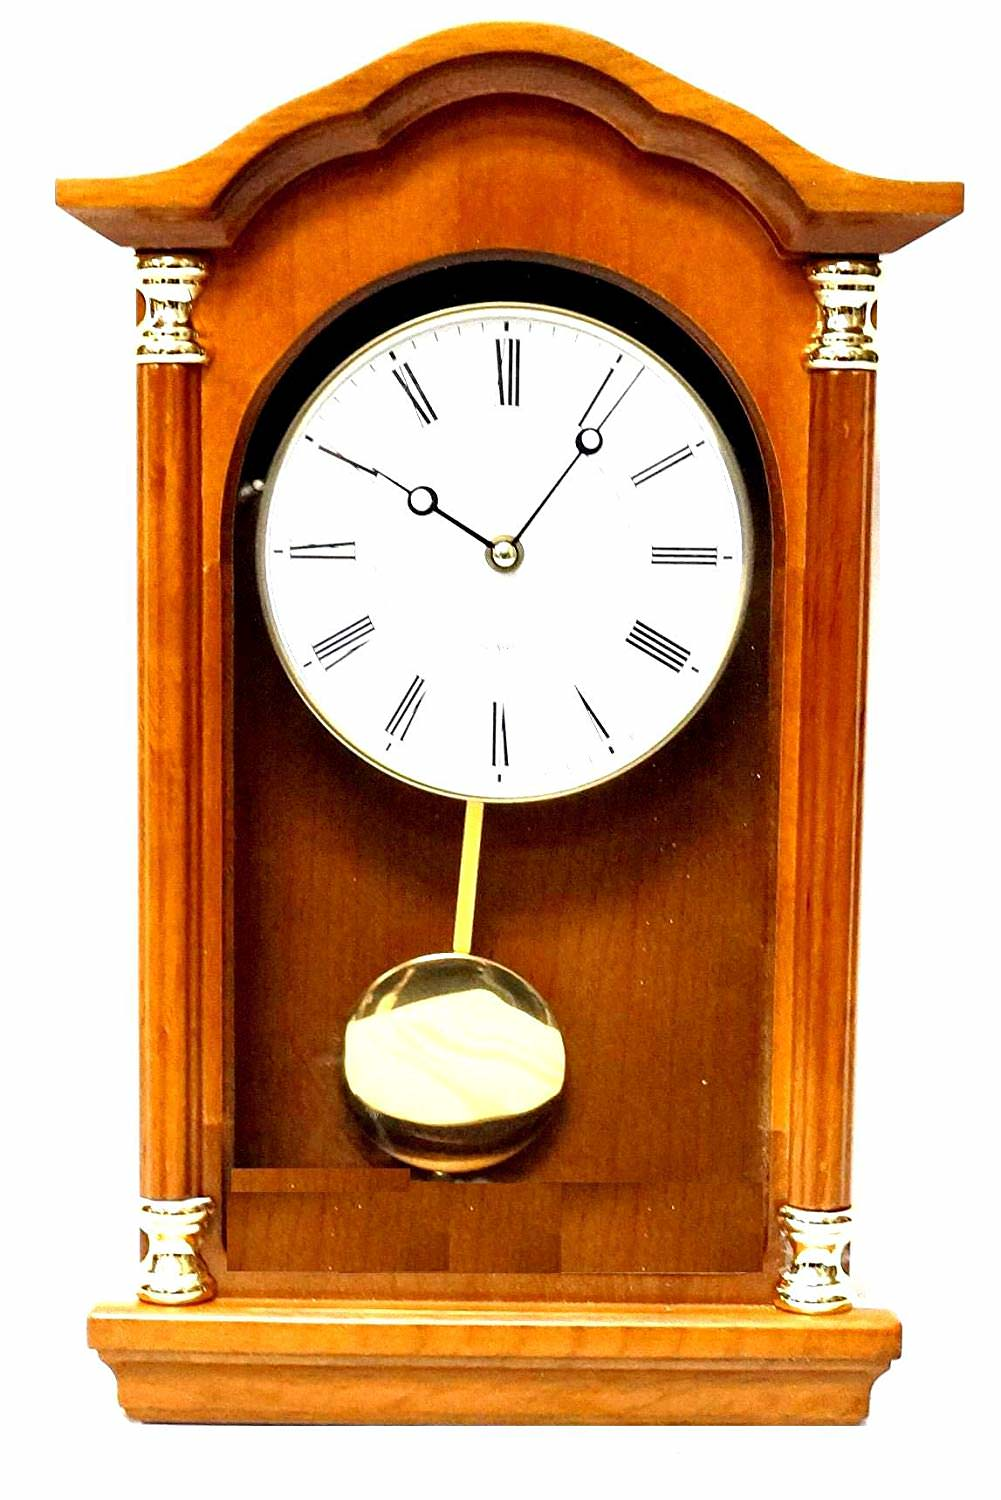 Ju0026D Best Pendulum Wall Clock, Silent Decorative Wood Clock With Swinging  Pendulum, Battery Operated For Living Room, Kitchen, Office U0026 Home Décor ...